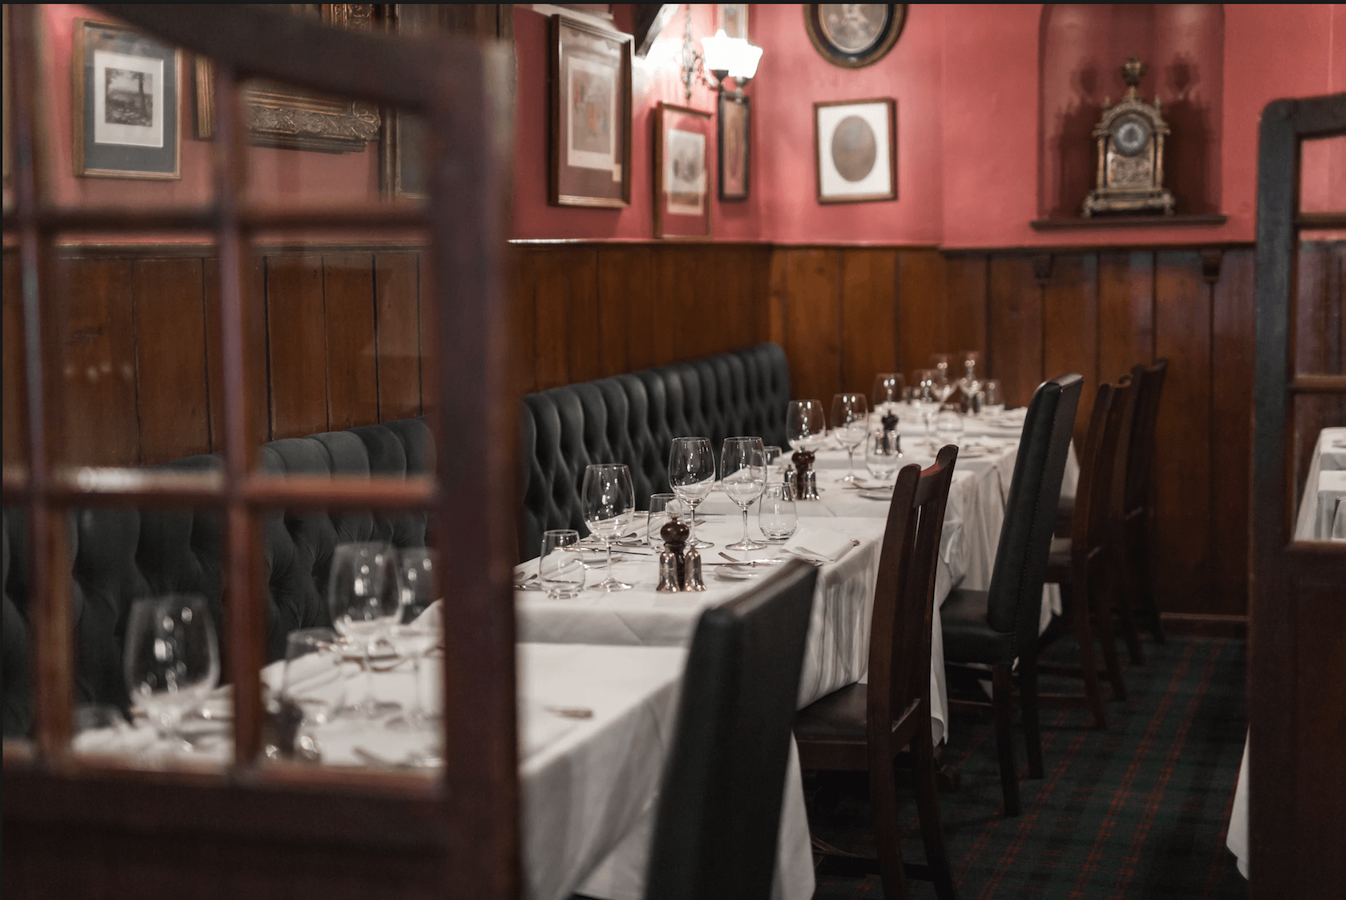 The guinea grill historic youngs pub in mayfair london from 1423 to 2018 our history take a deeper dive into the fascinating origins of the guinea grill publicscrutiny Image collections